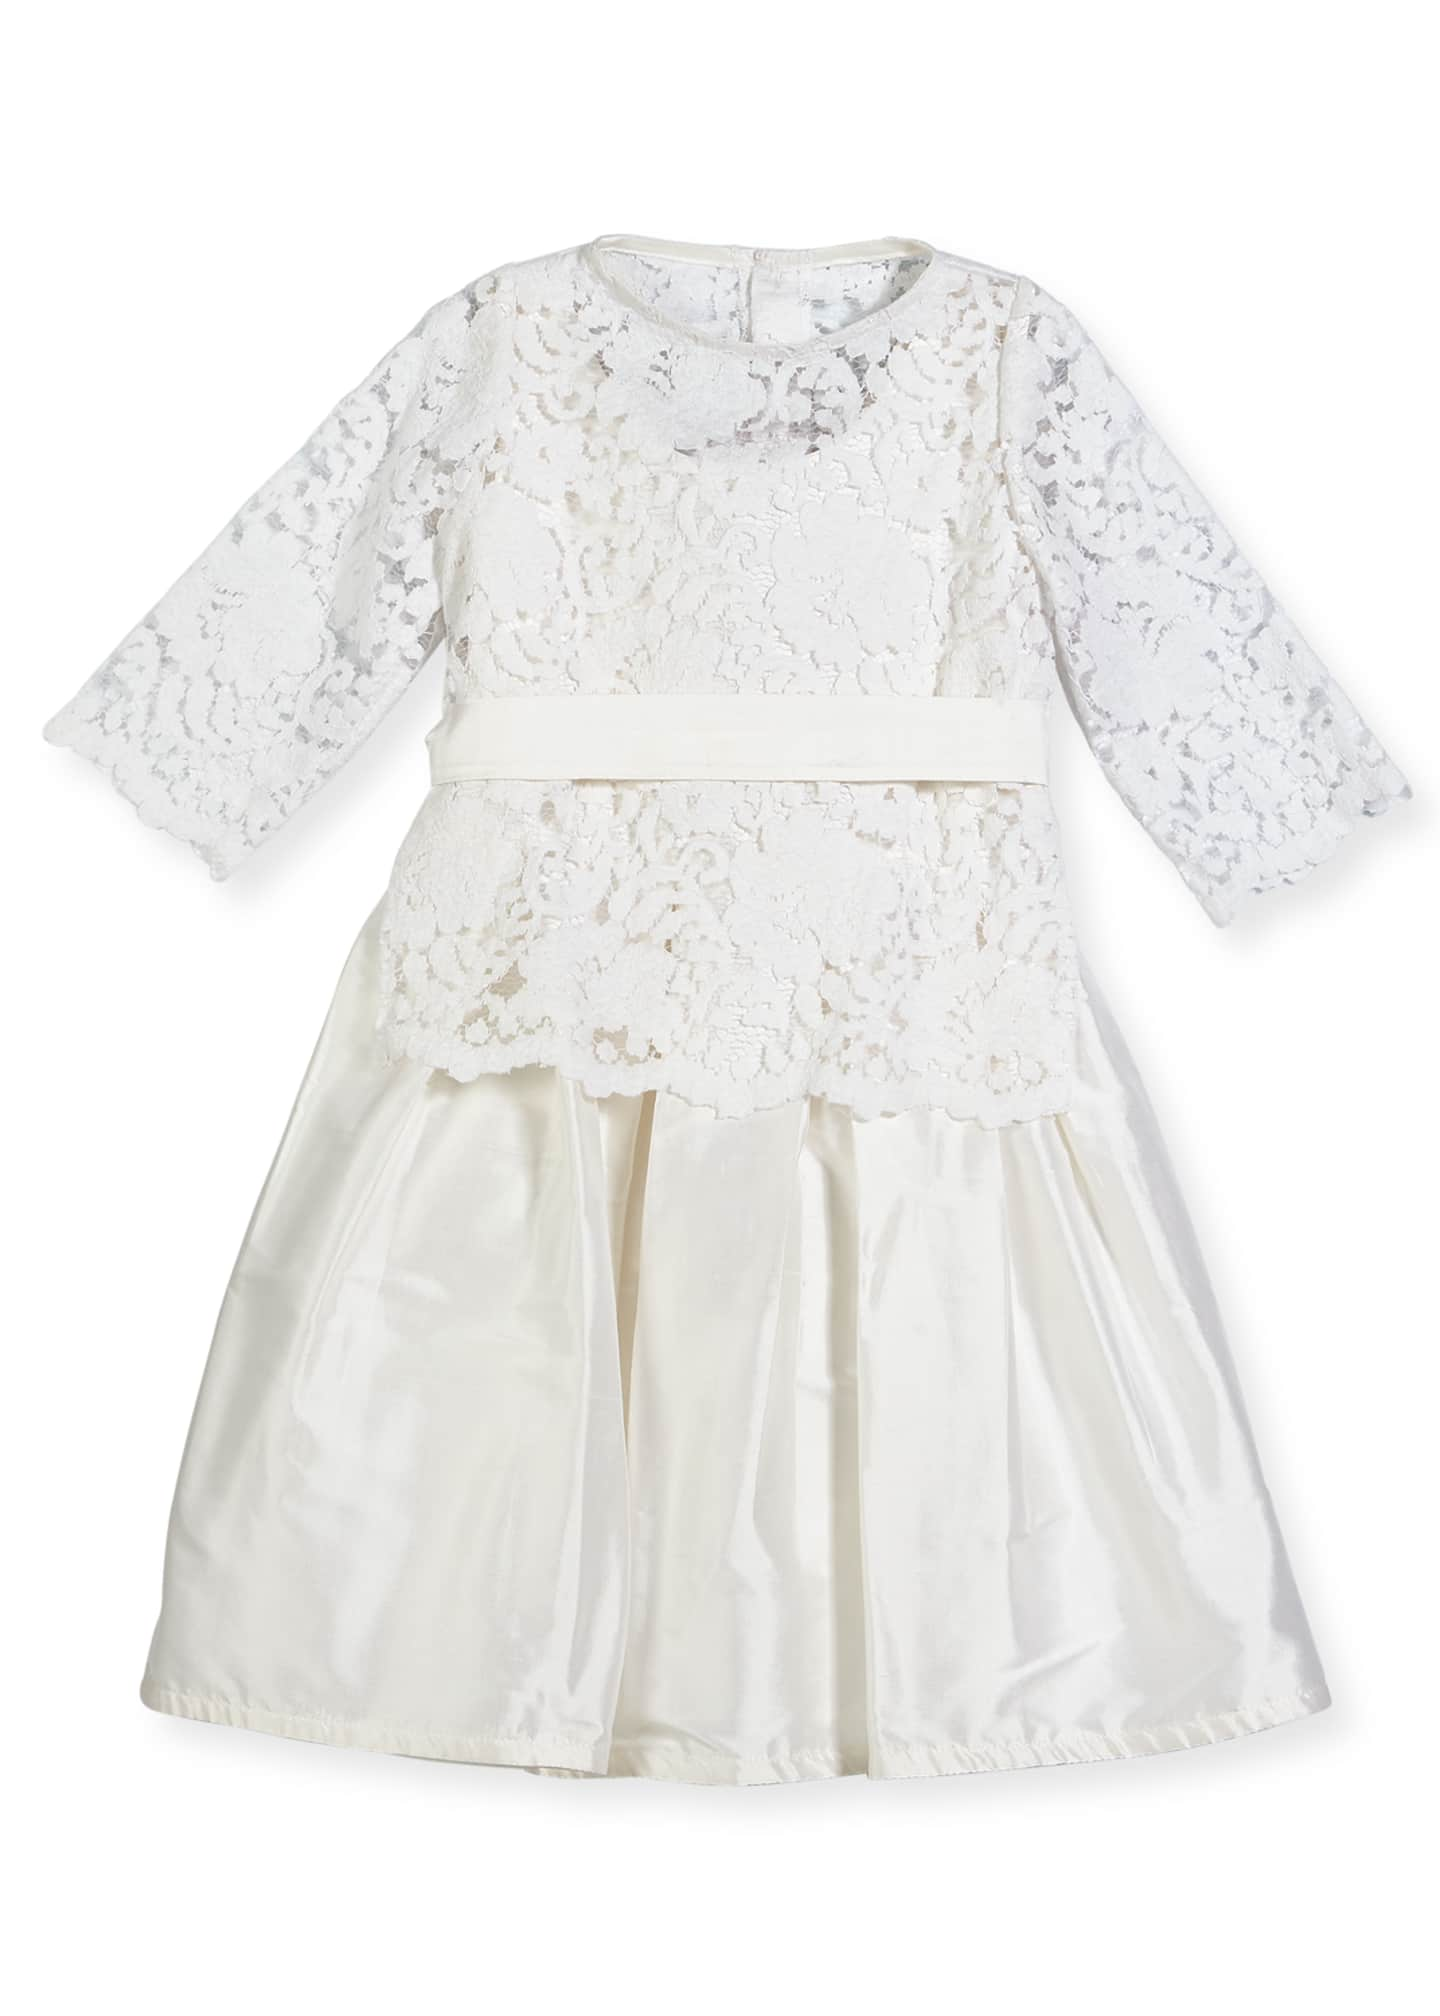 Image 1 of 2: Fable Silk Dress w/ Lace Overlay Top, Size 4-6